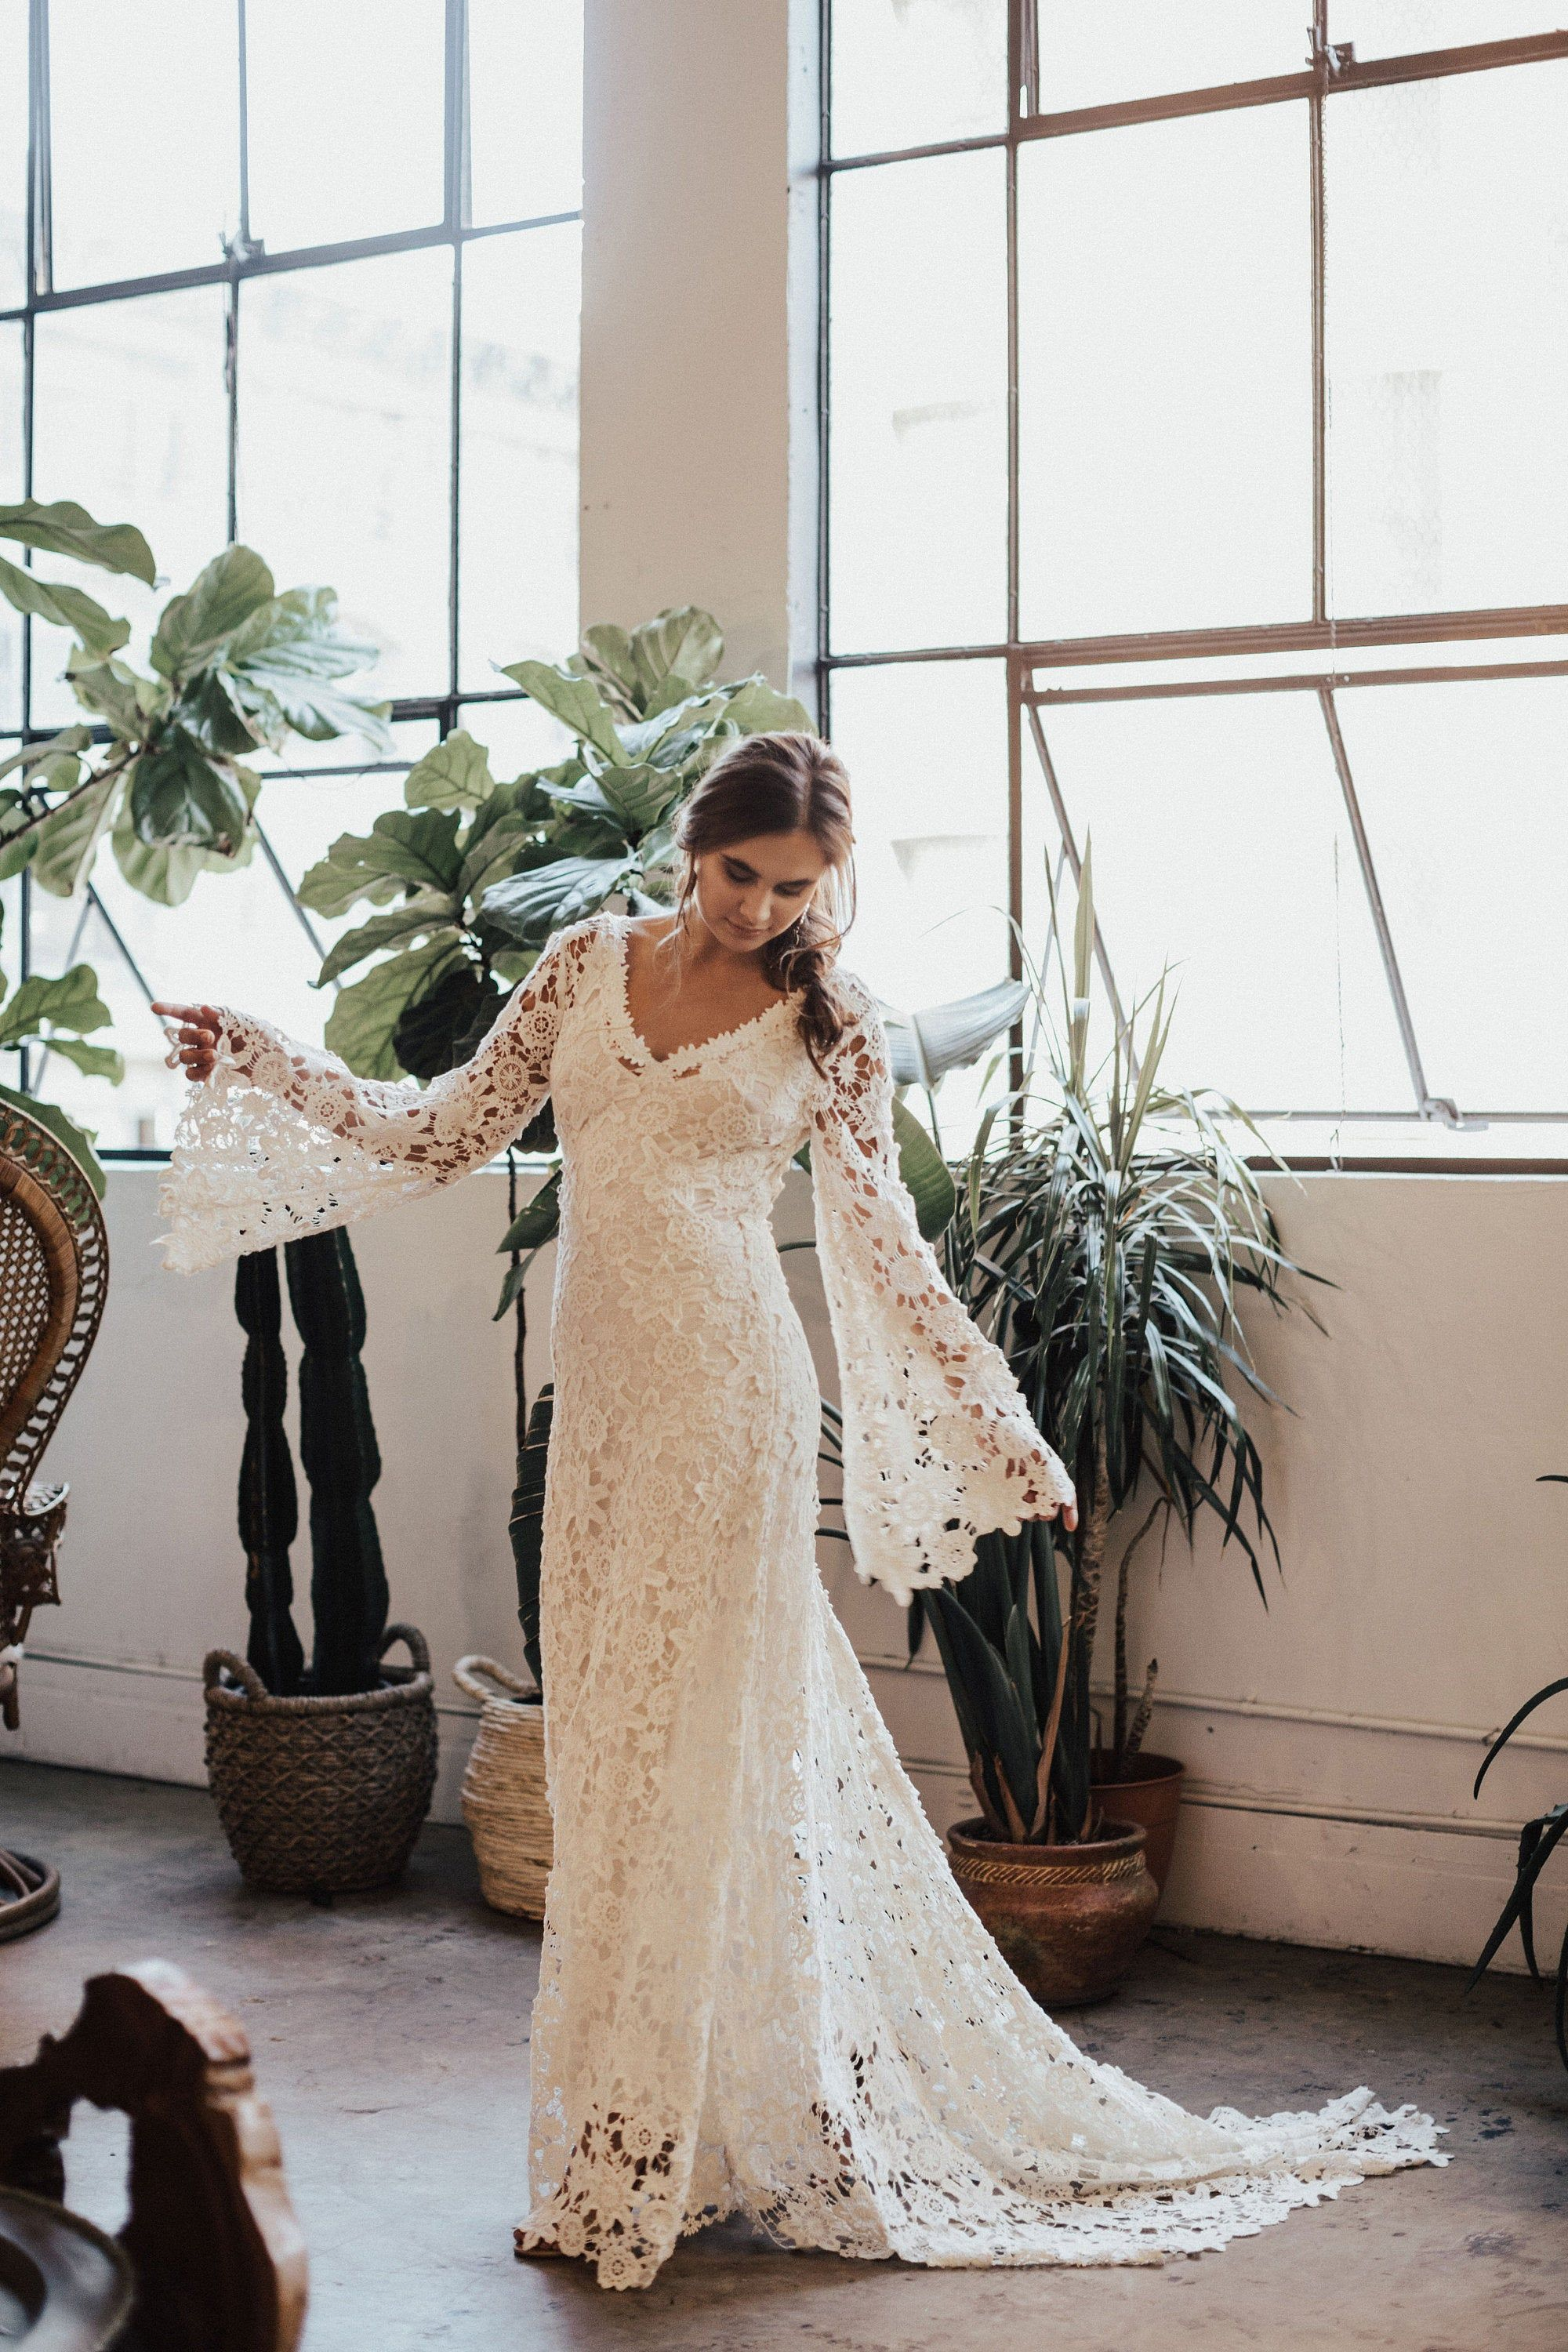 Arabelle BOHO WEDDING DRESS| Bell Sleeve Lace Bohemian Wedding Dress with Train| Lace Wedding Dress | Hippie Wedding Dress | size 0-18